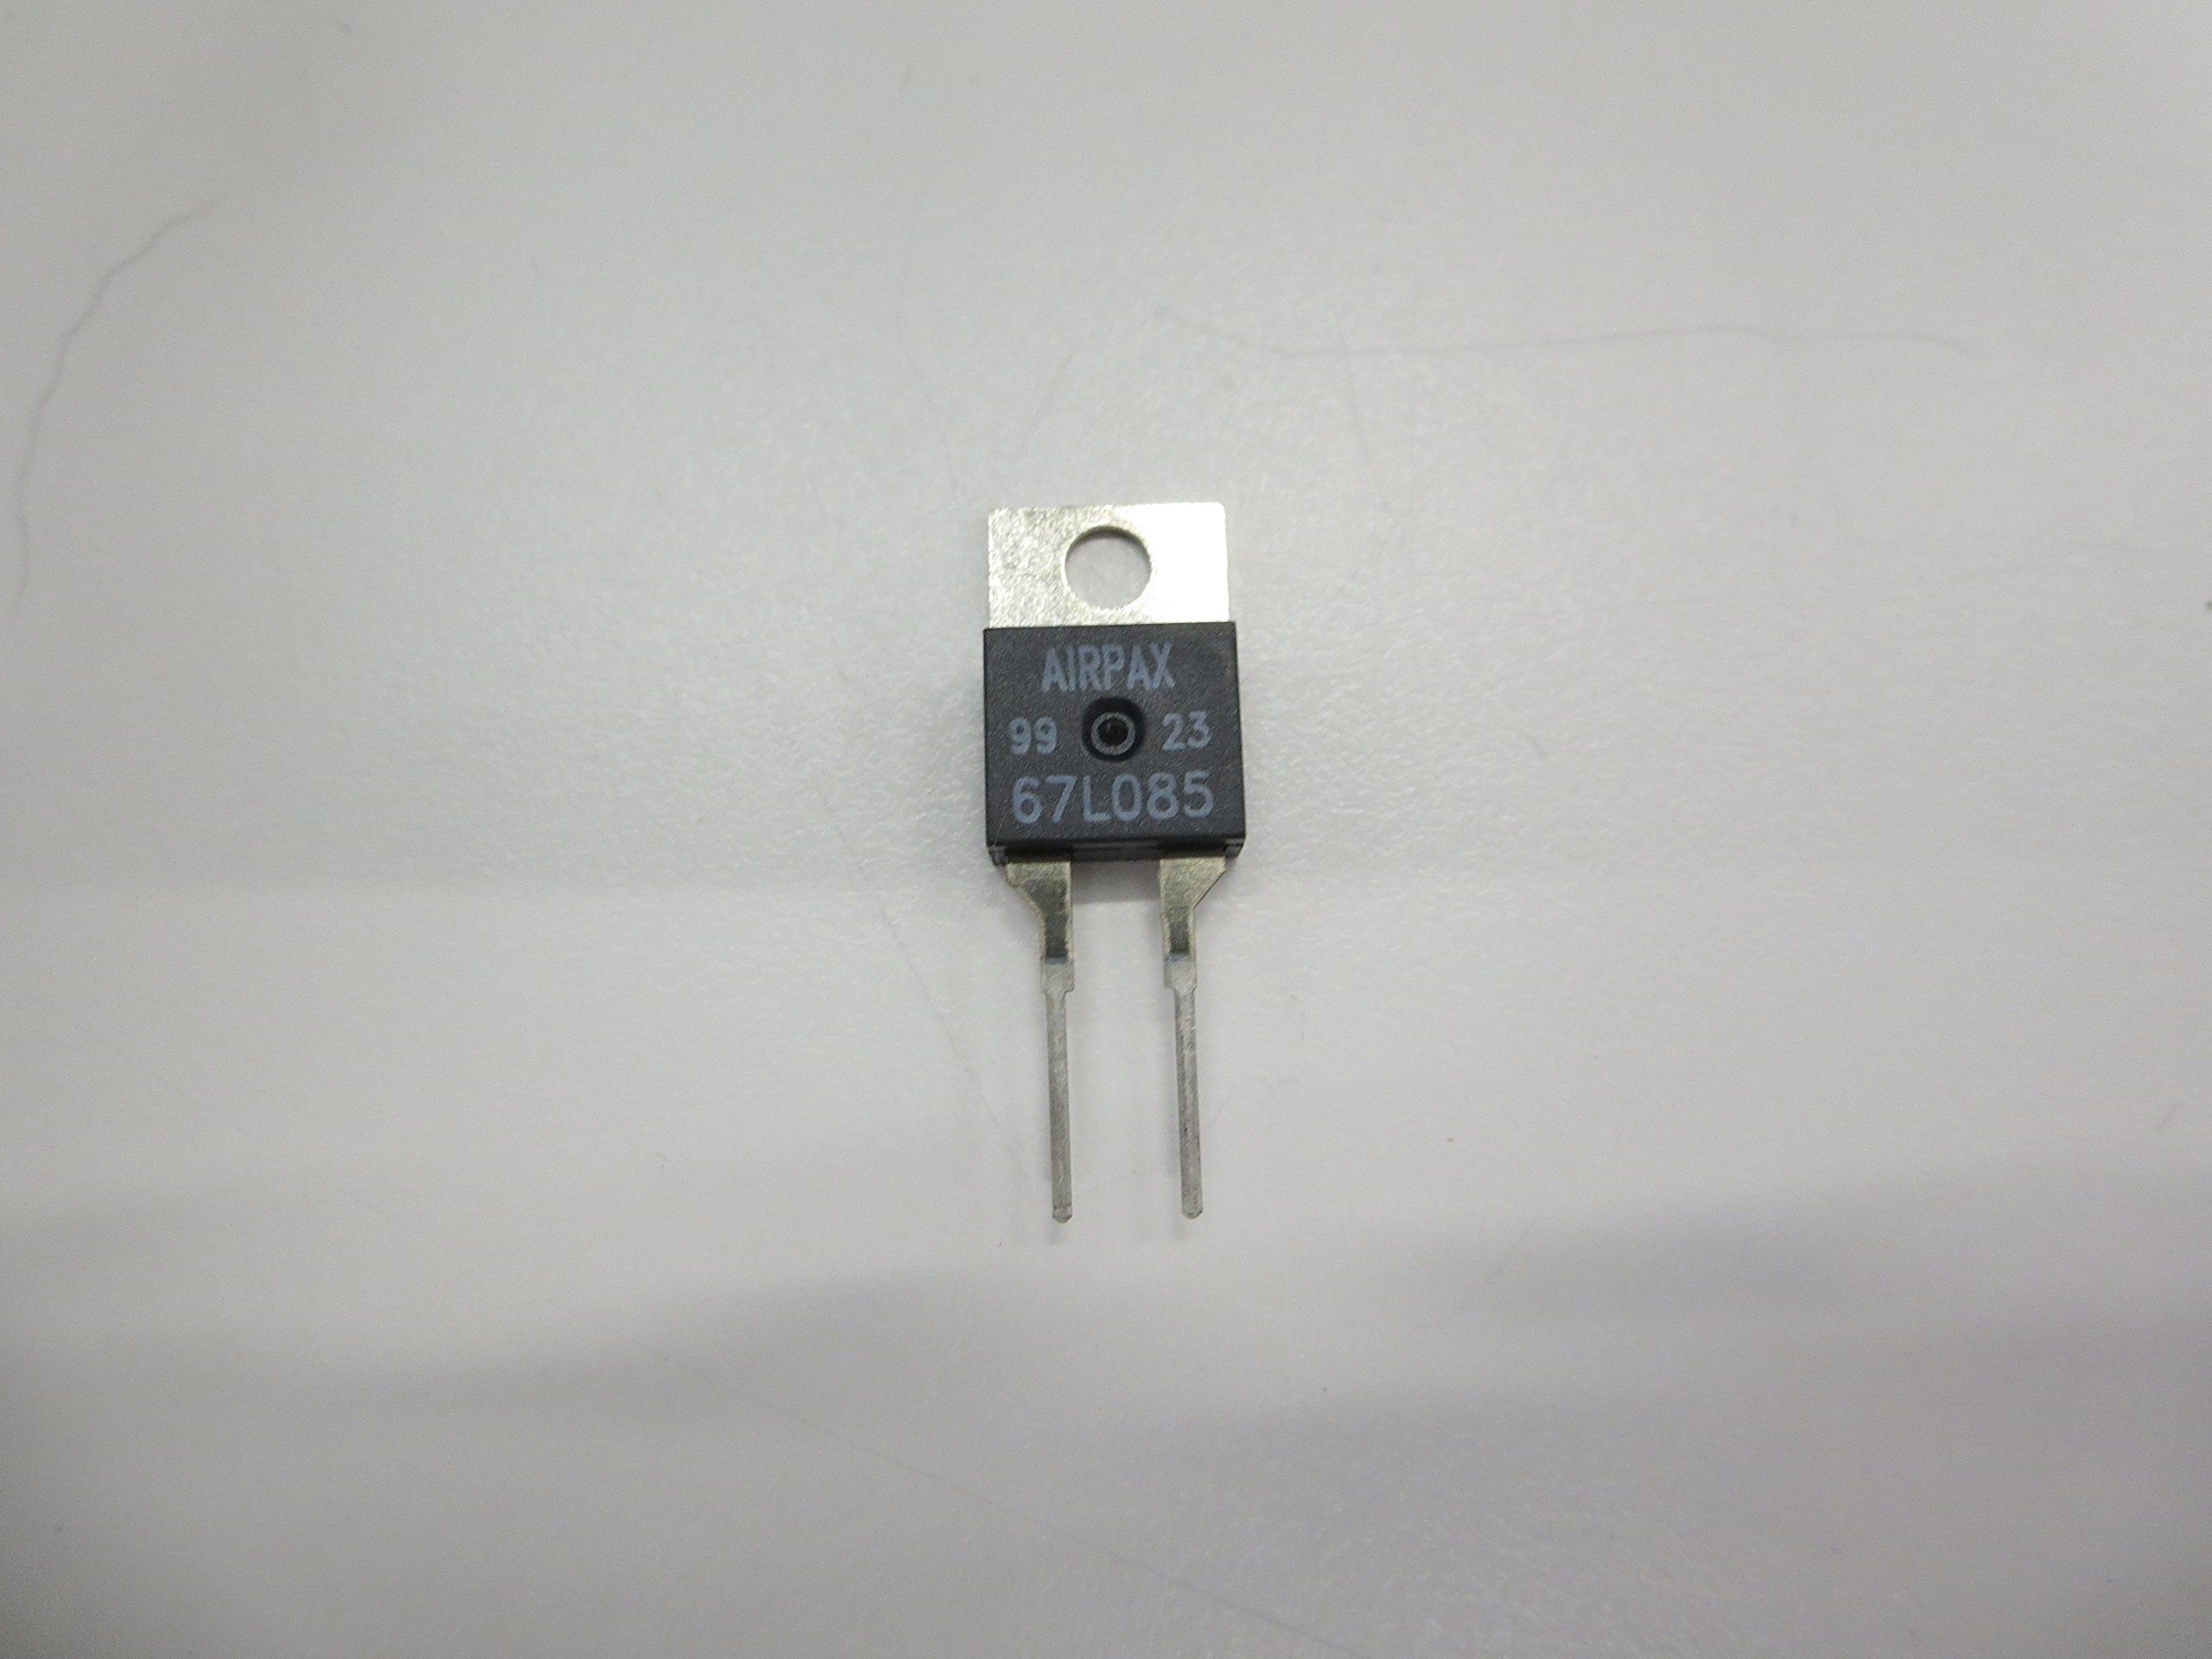 AIRPAX 67L085 THERMOSTAT